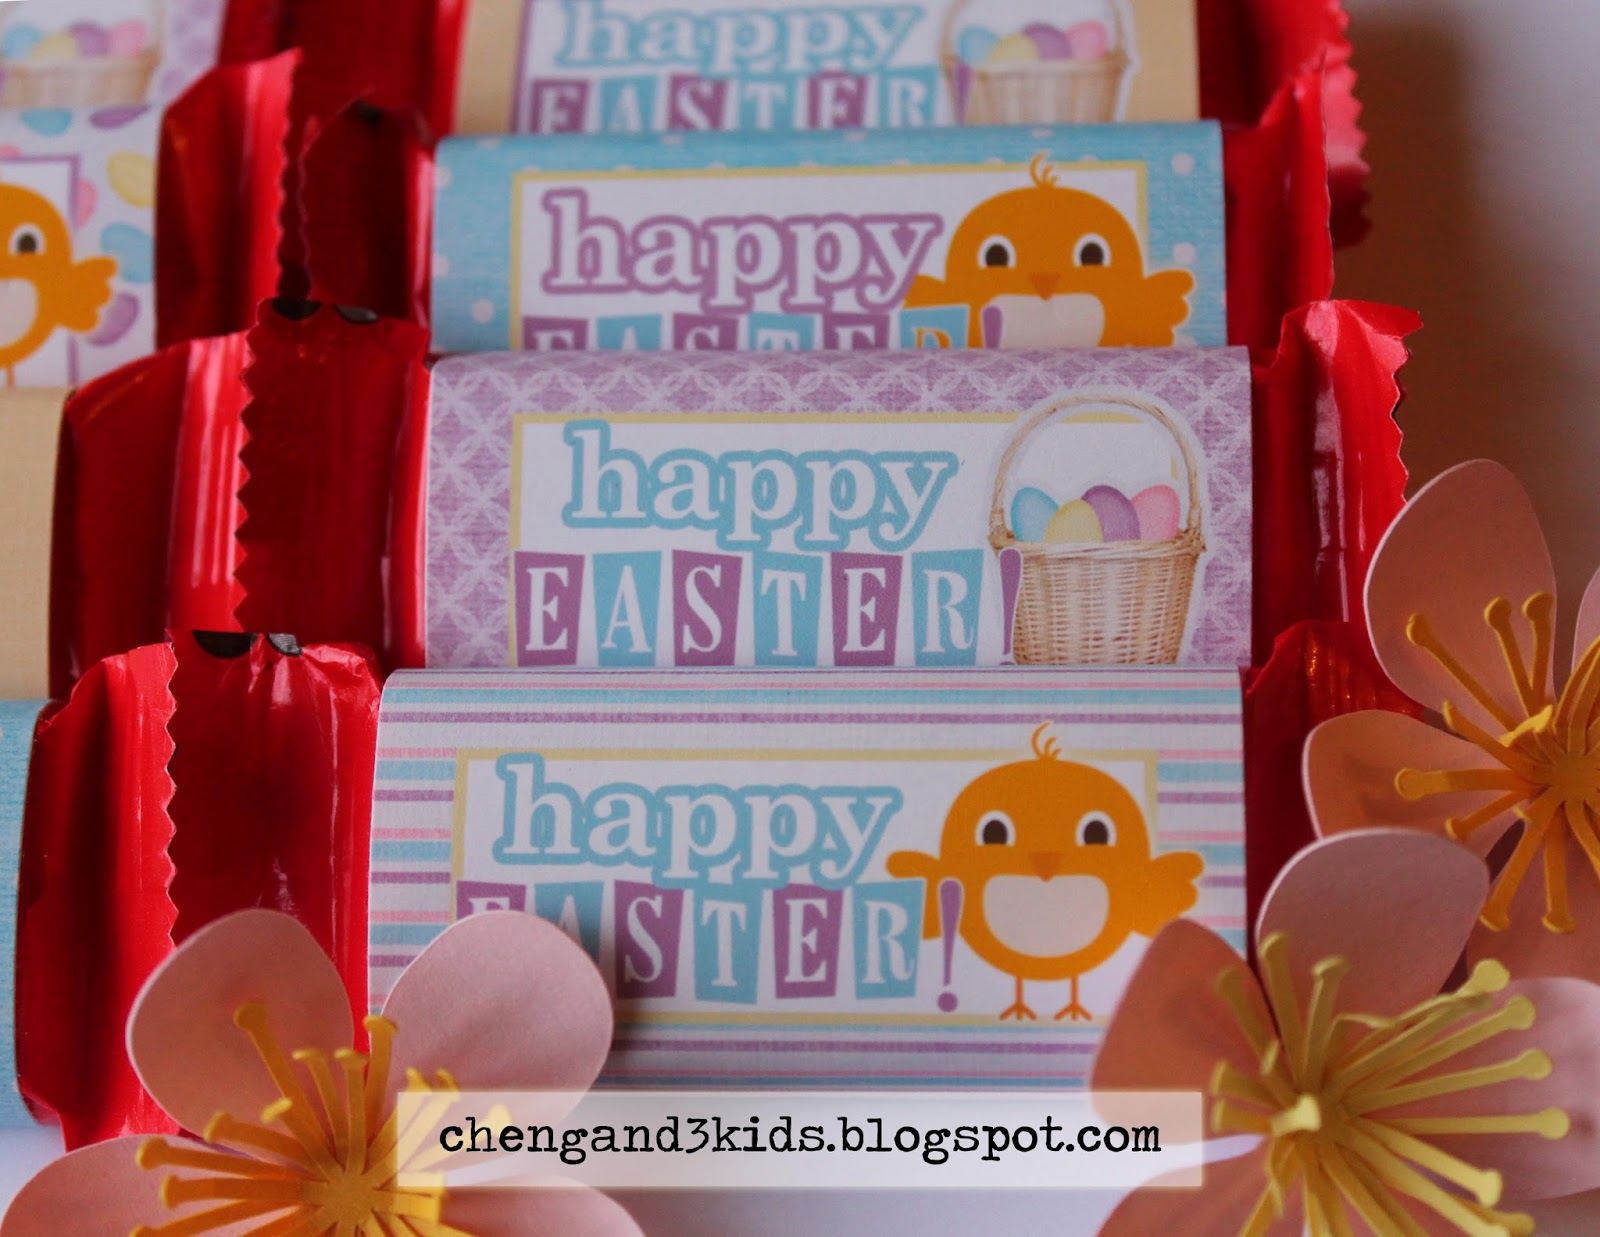 Easter KitKat Wrappers by chengand3kids.blogspot.com